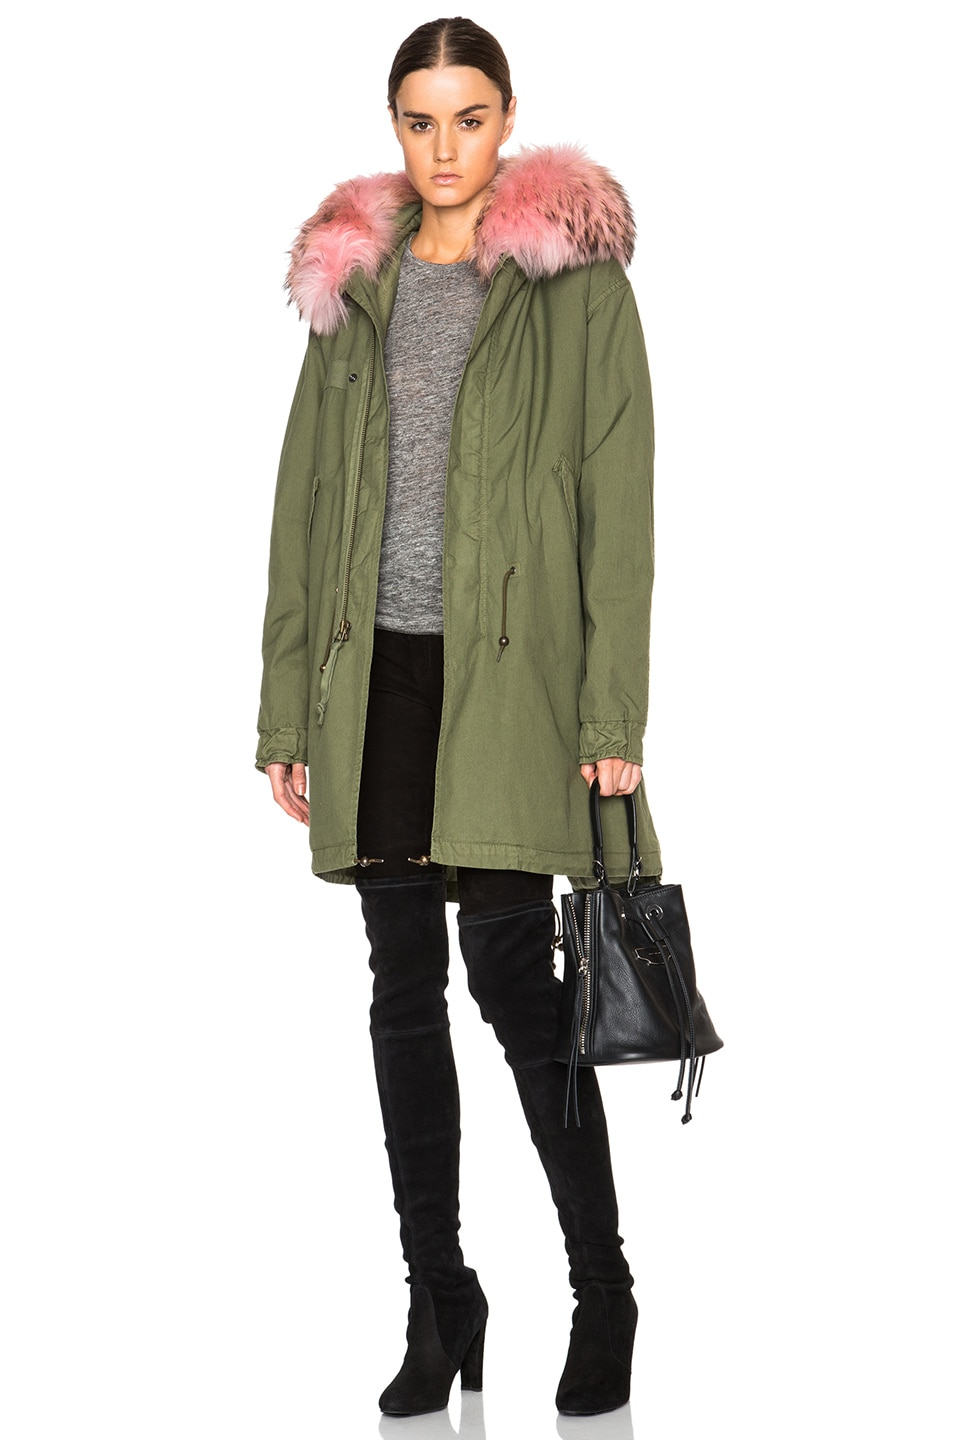 Mr Amp Mrs Italy Army Canvas Parka With Raccoon Fur In